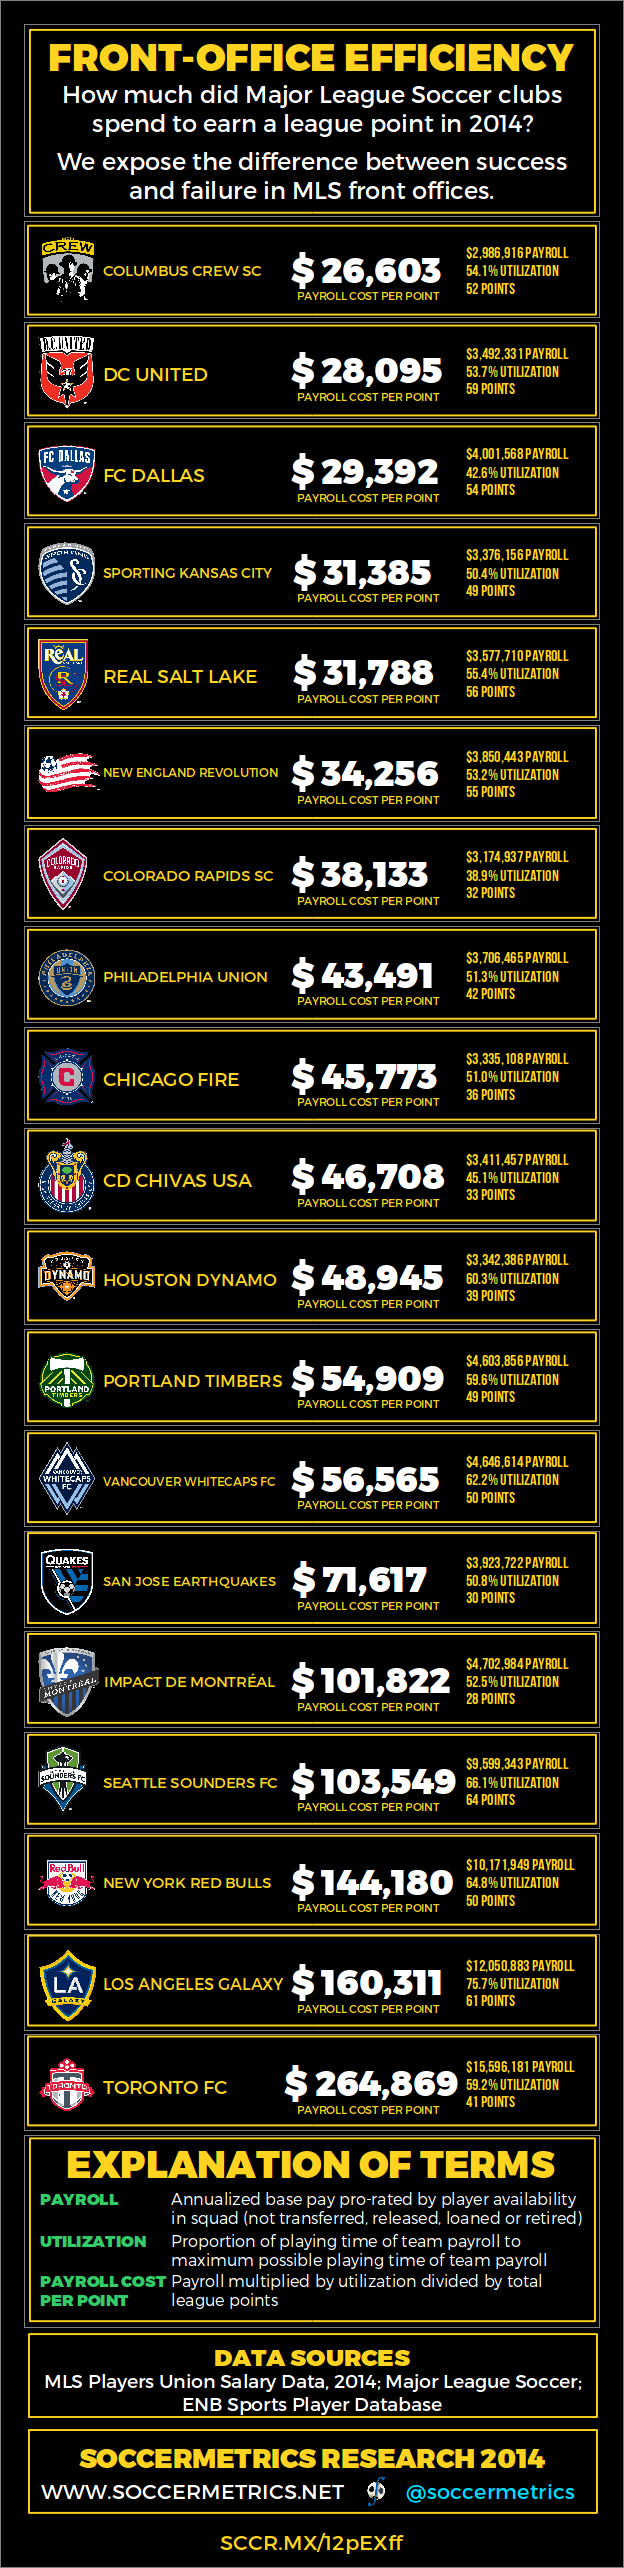 MLS_FOE_2014_FullGraphic